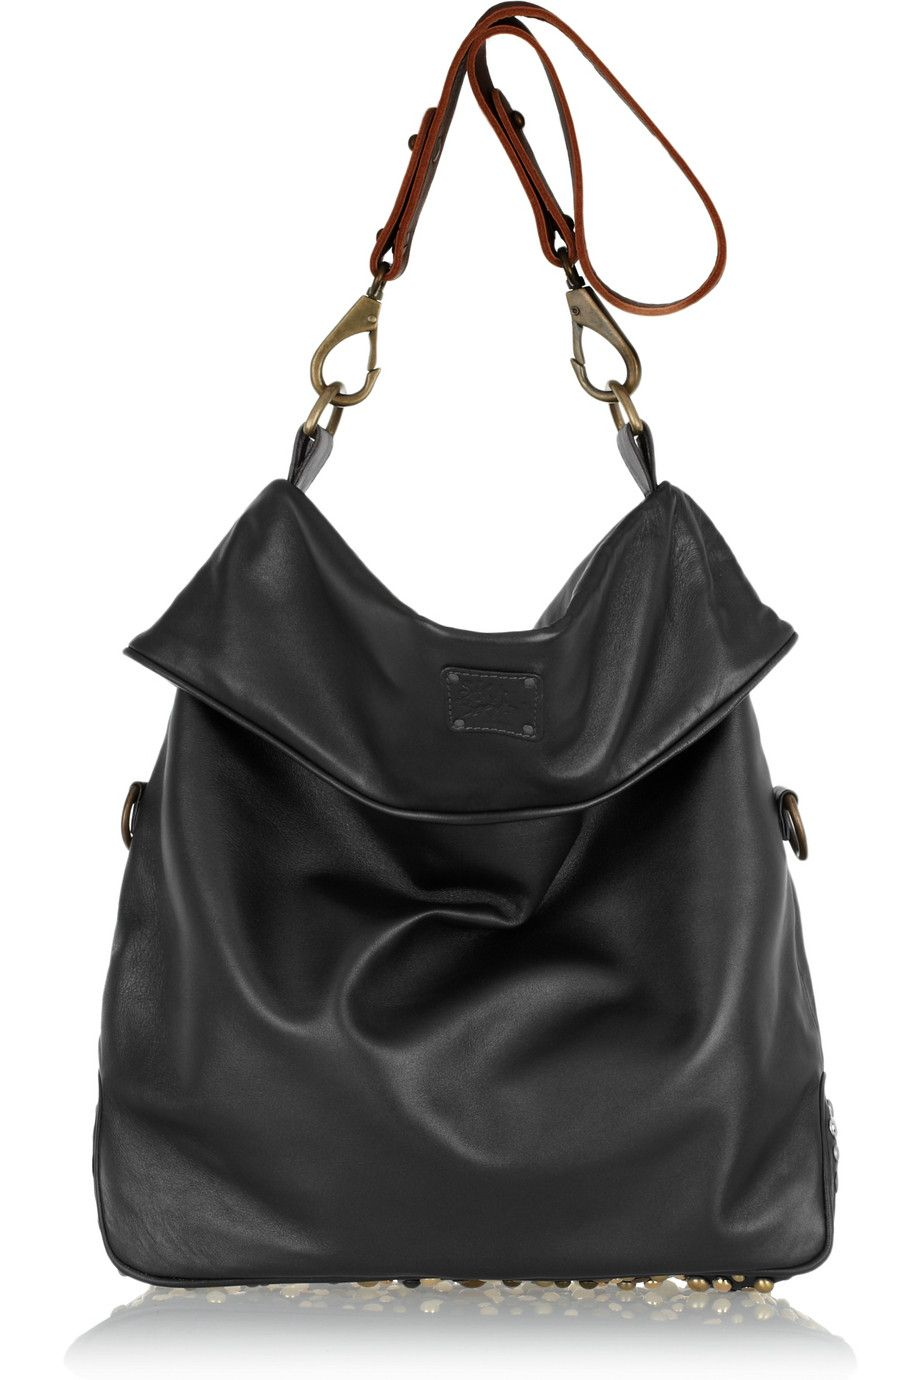 Sara Berman Black Purse